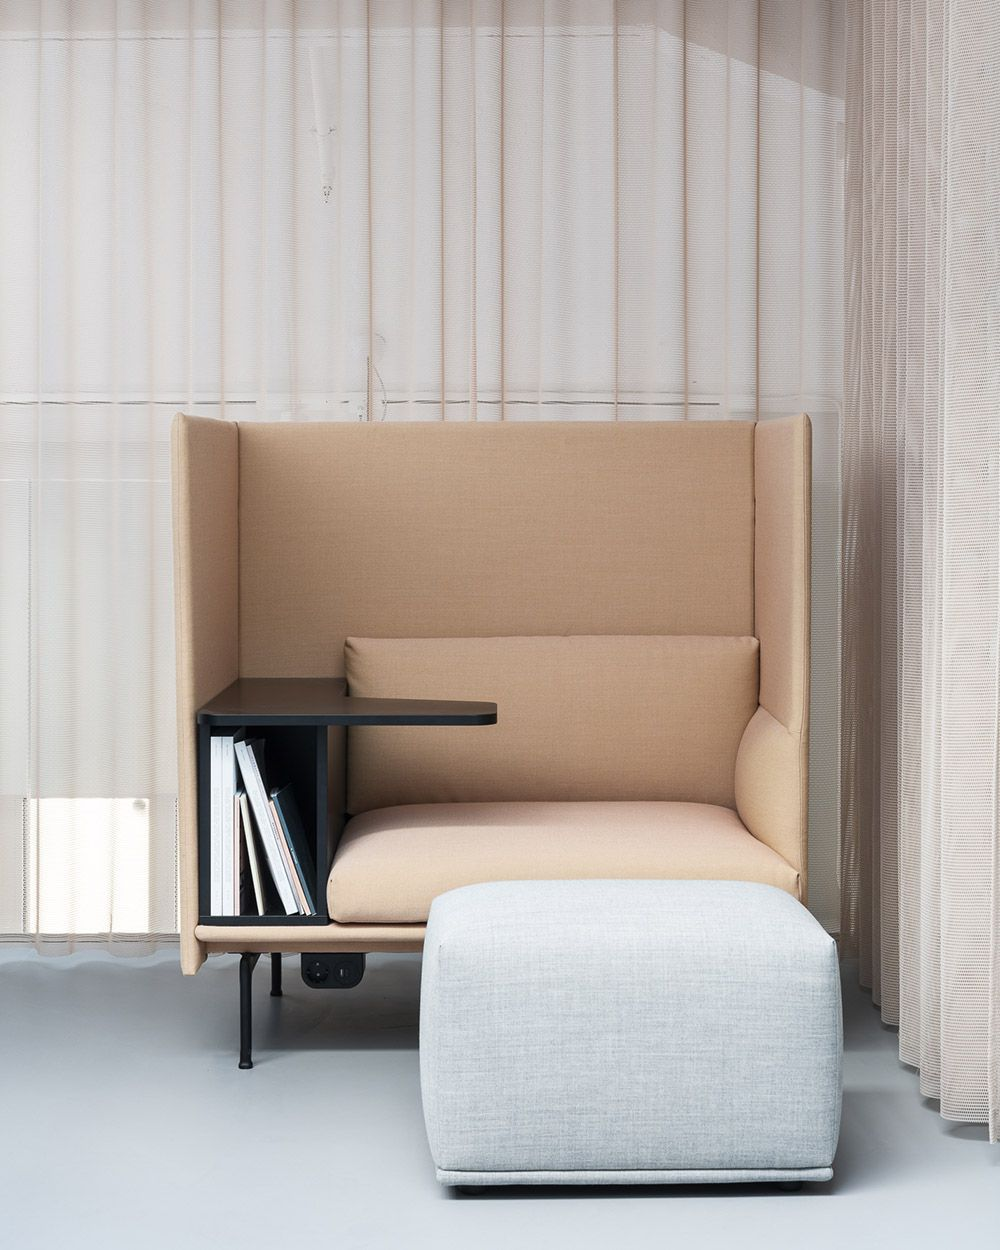 Modern and minimal office space decor inspiration from Muuto: The Outline Highback Work combines the soft, deep seat and clean refined lines of the Outline series with a highback element and functional elements, allowing for the design to create an acoustic and spatial shelter to work and focus on the given task at hand. #scandinaviandesign #homedecor